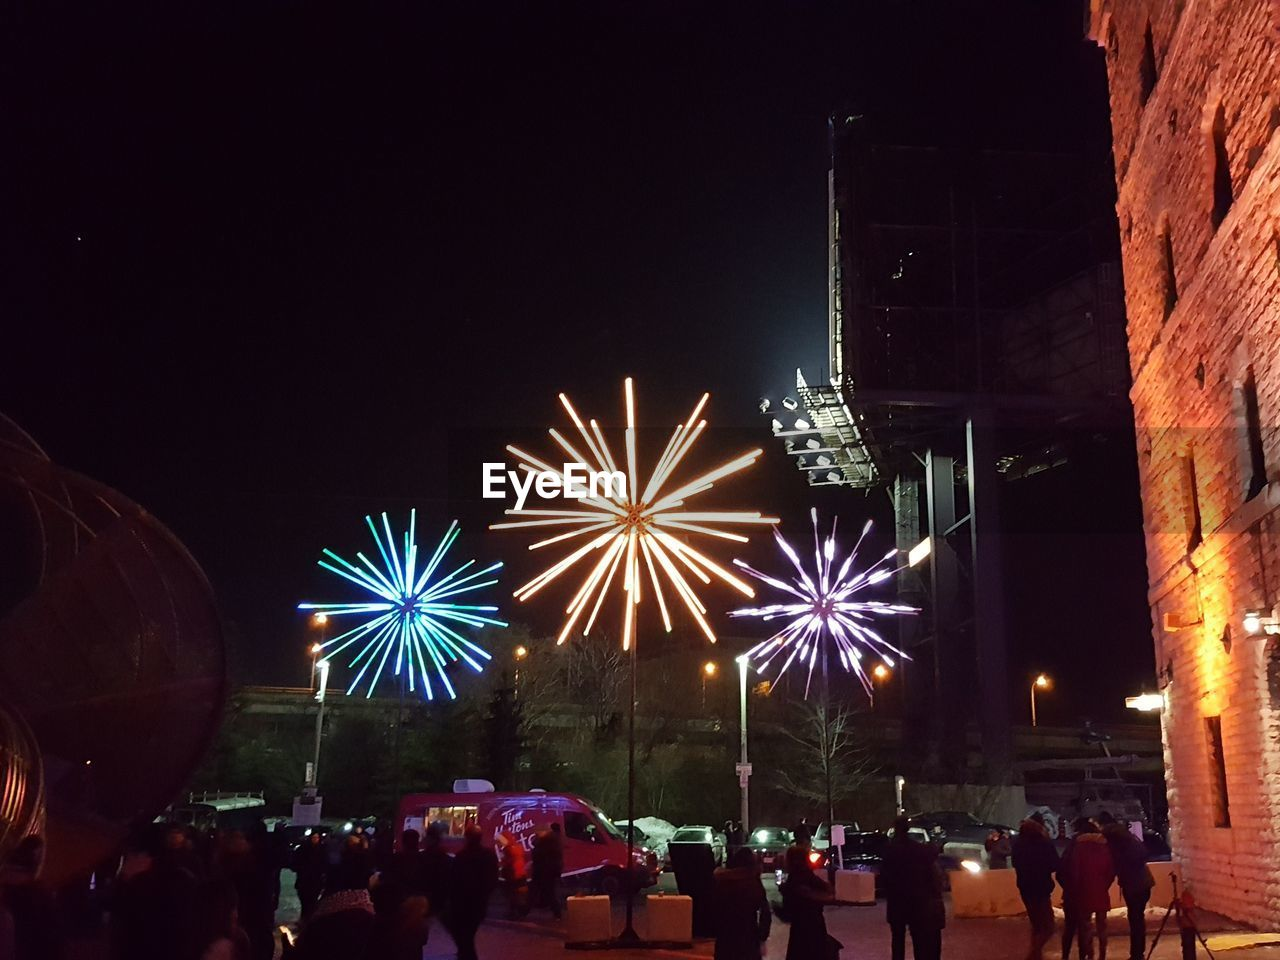 night, large group of people, real people, illuminated, arts culture and entertainment, celebration, lifestyles, men, leisure activity, women, built structure, event, firework display, firework - man made object, crowd, outdoors, architecture, building exterior, sky, people